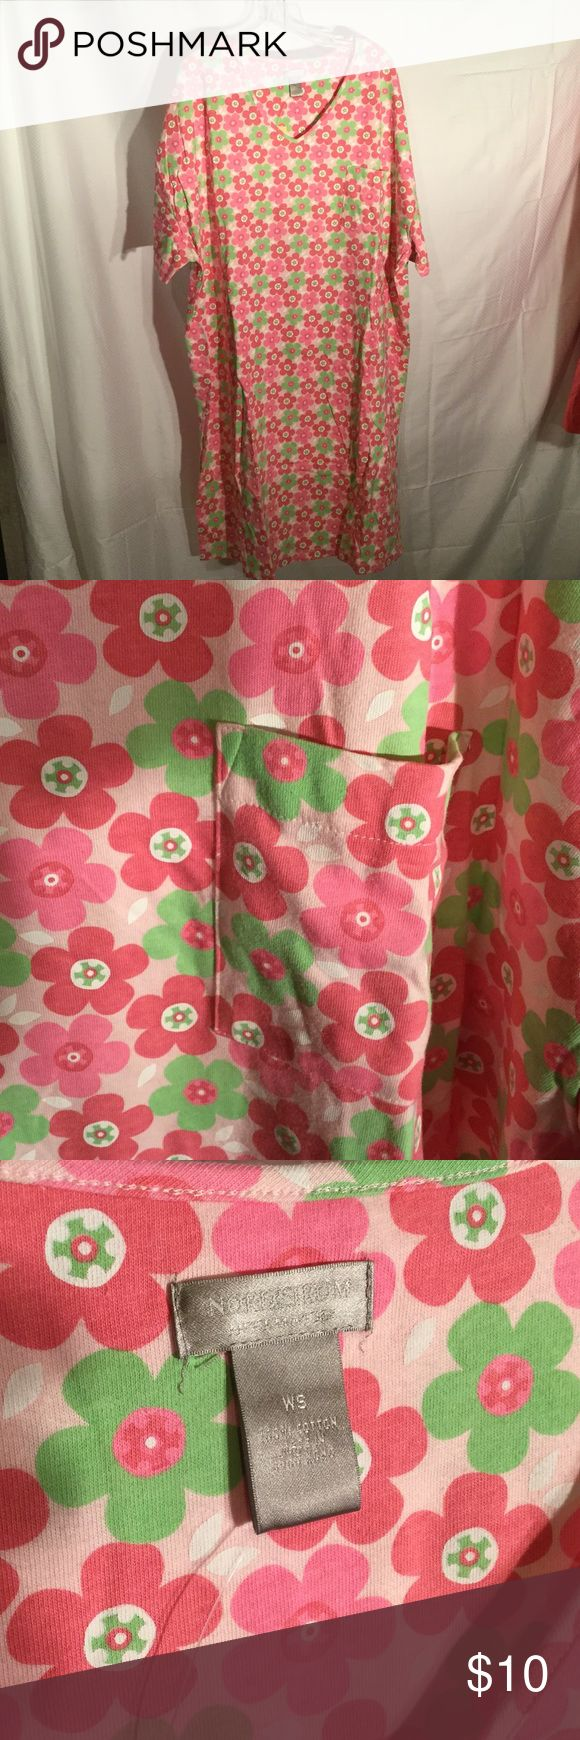 Nordstrom ladies nightgown plus size Ladies hot pink ,baby pink and light green nightgown has short sleeves and a left front patch pocket . Super cute floral print NWT size is a woman's one size but I would place it at a generous 2x ...perhaps a 3x roomy design Nordstrom Intimates & Sleepwear Pajamas